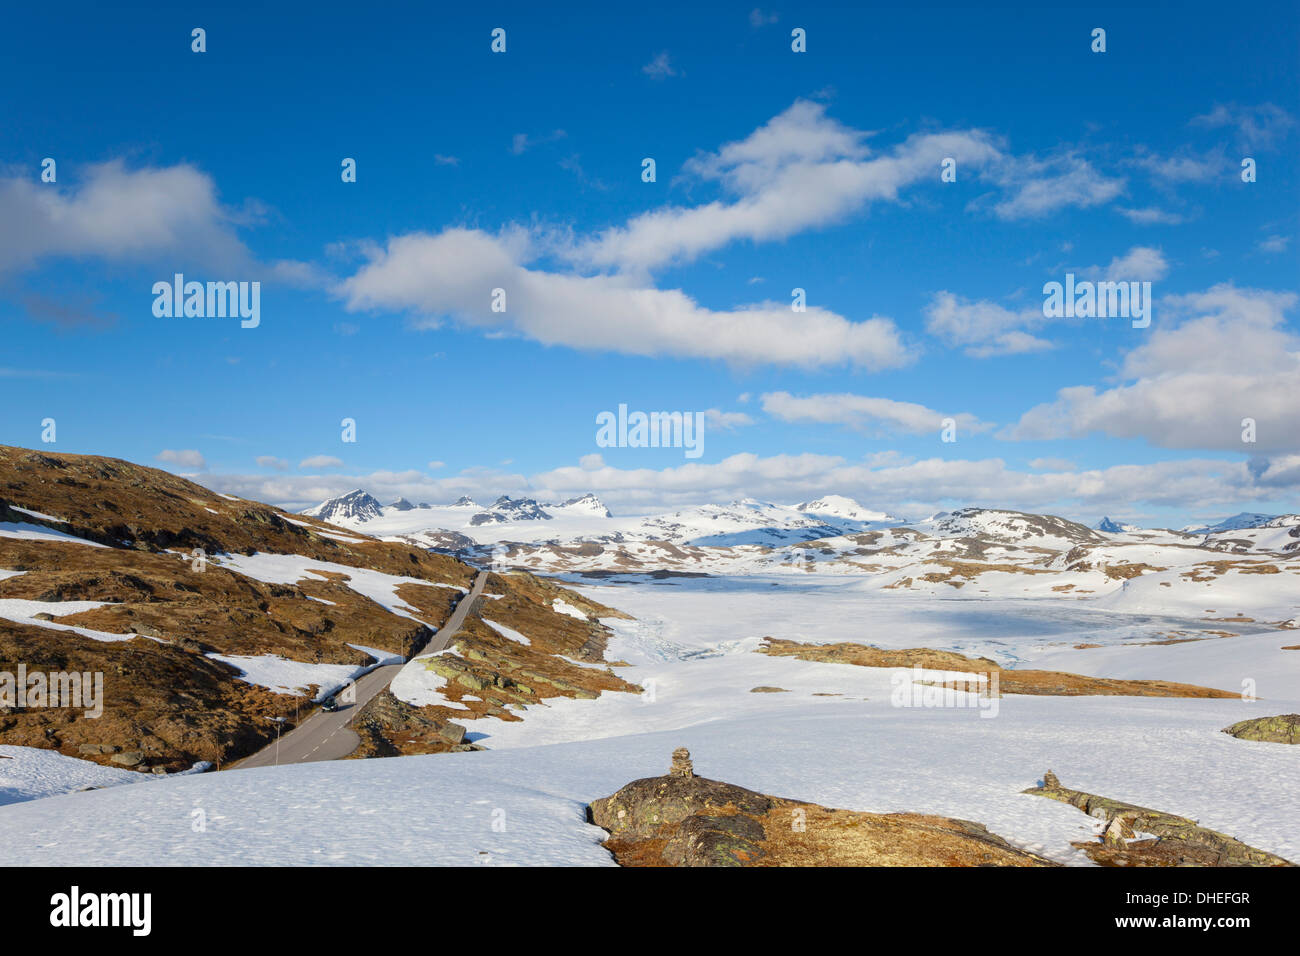 Snow covered plateau in the Jotunheimen National Park, Sogn og Fjordane, Norway, Scandinavia, Europe - Stock Image